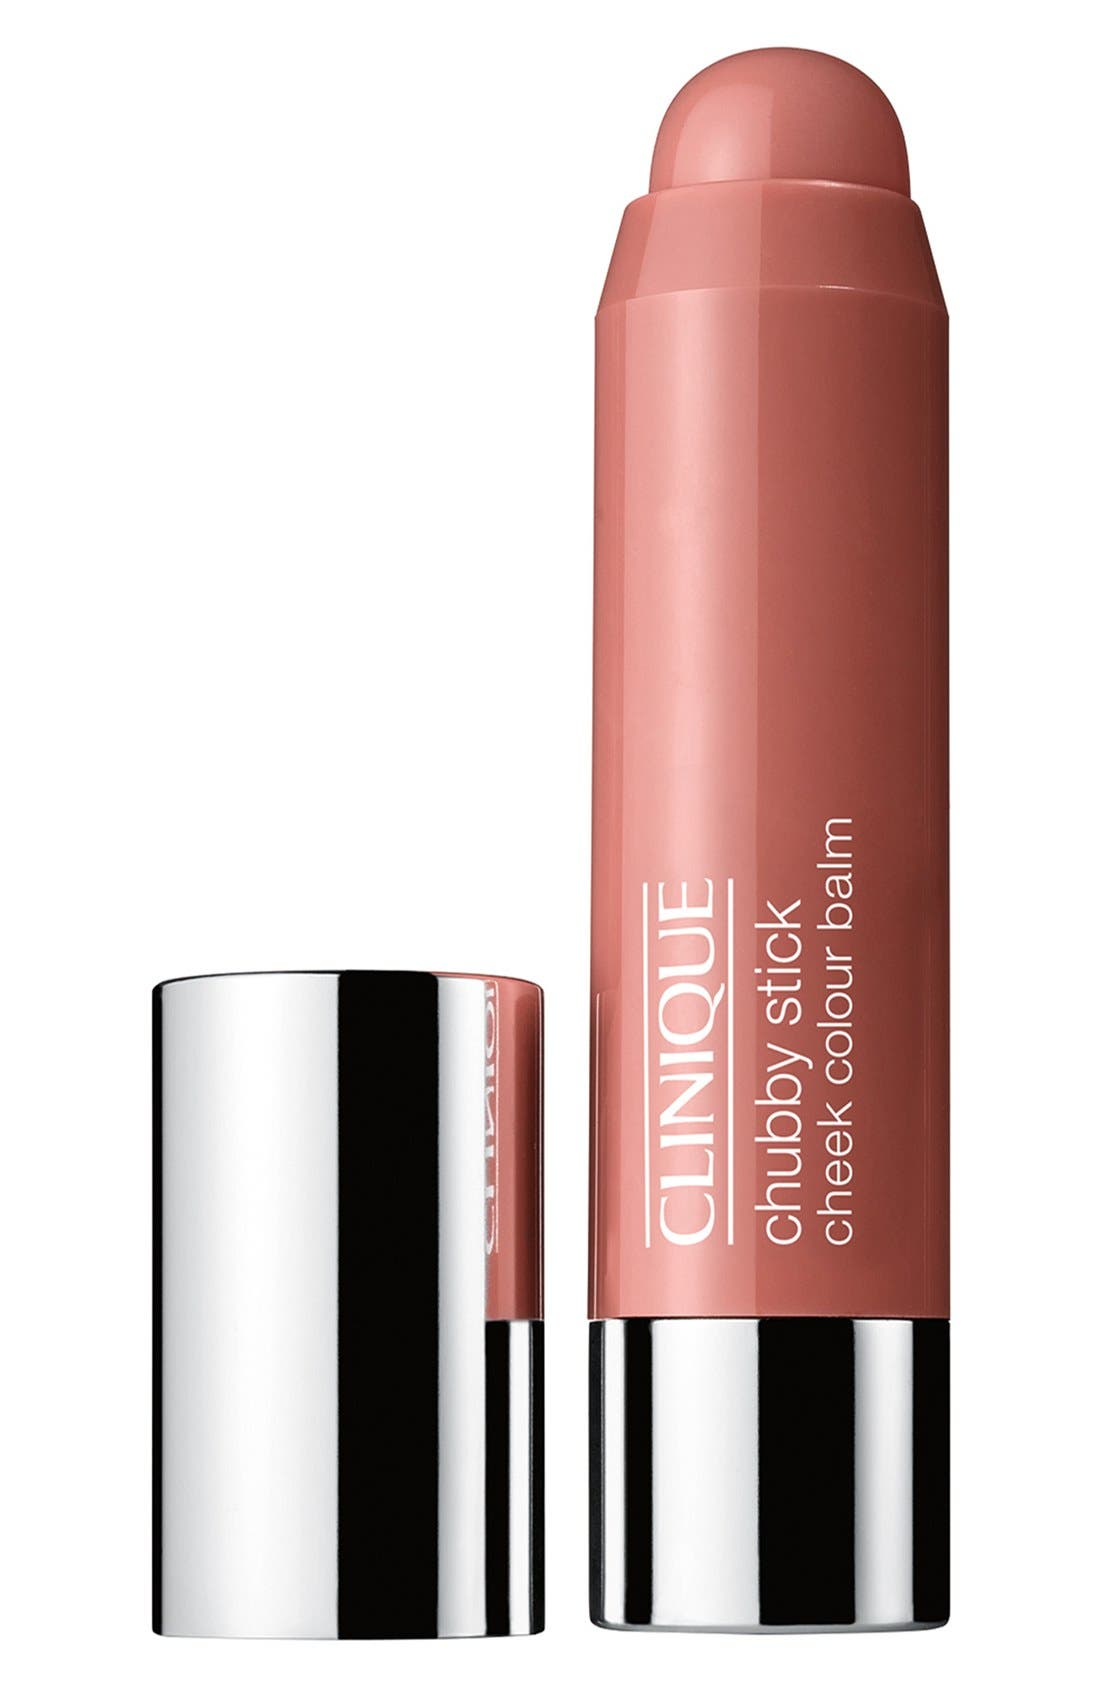 Clinique 'Chubby Stick' Moisturizing Cheek Color Balm